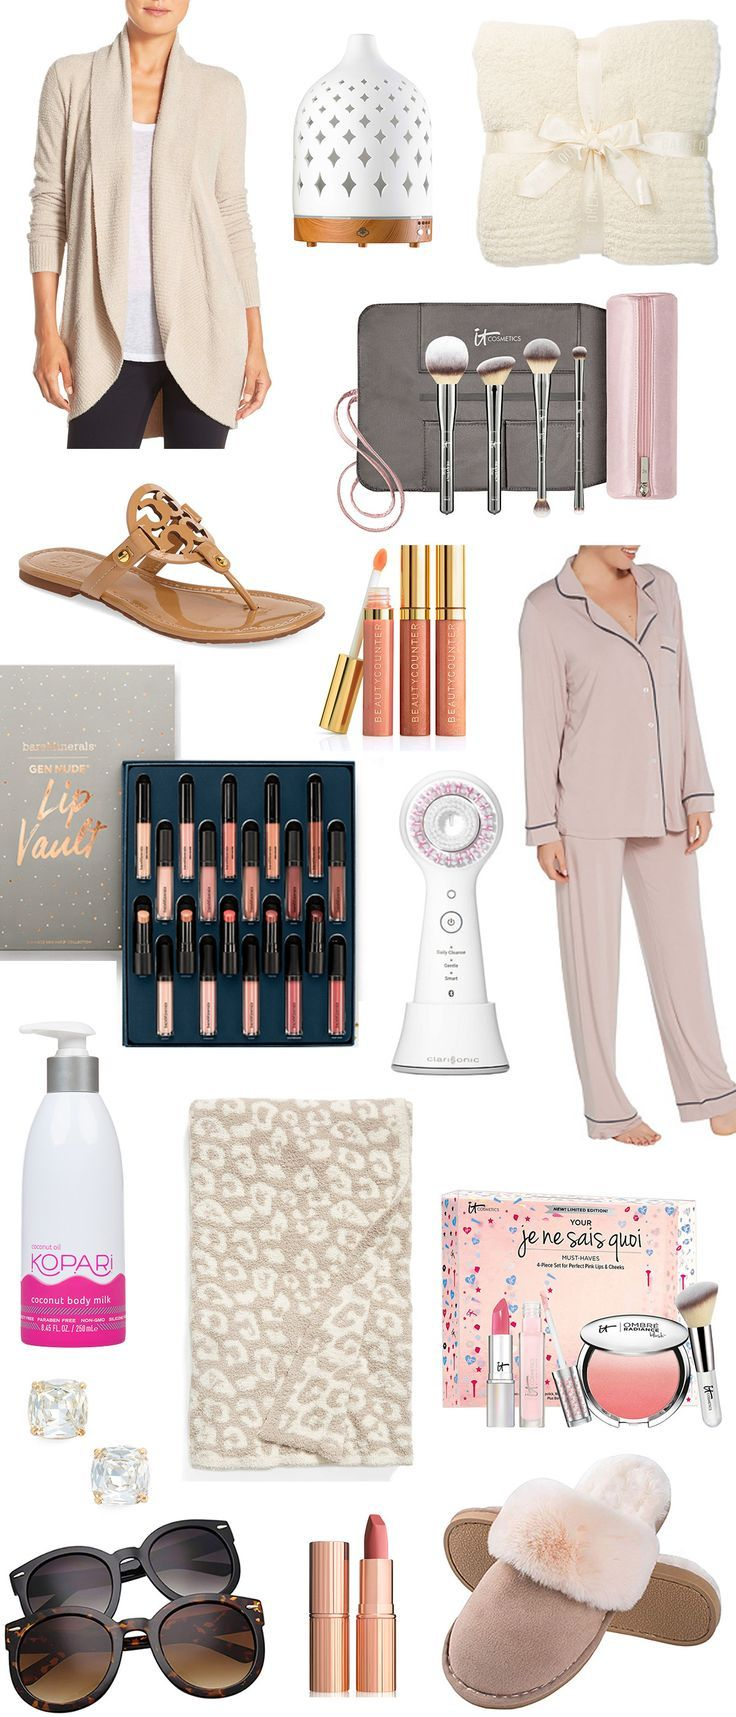 The Best Christmas Gift Ideas For Women No Matter Who Youre Shopping This Is Ultimate Guide With Tons Of Top